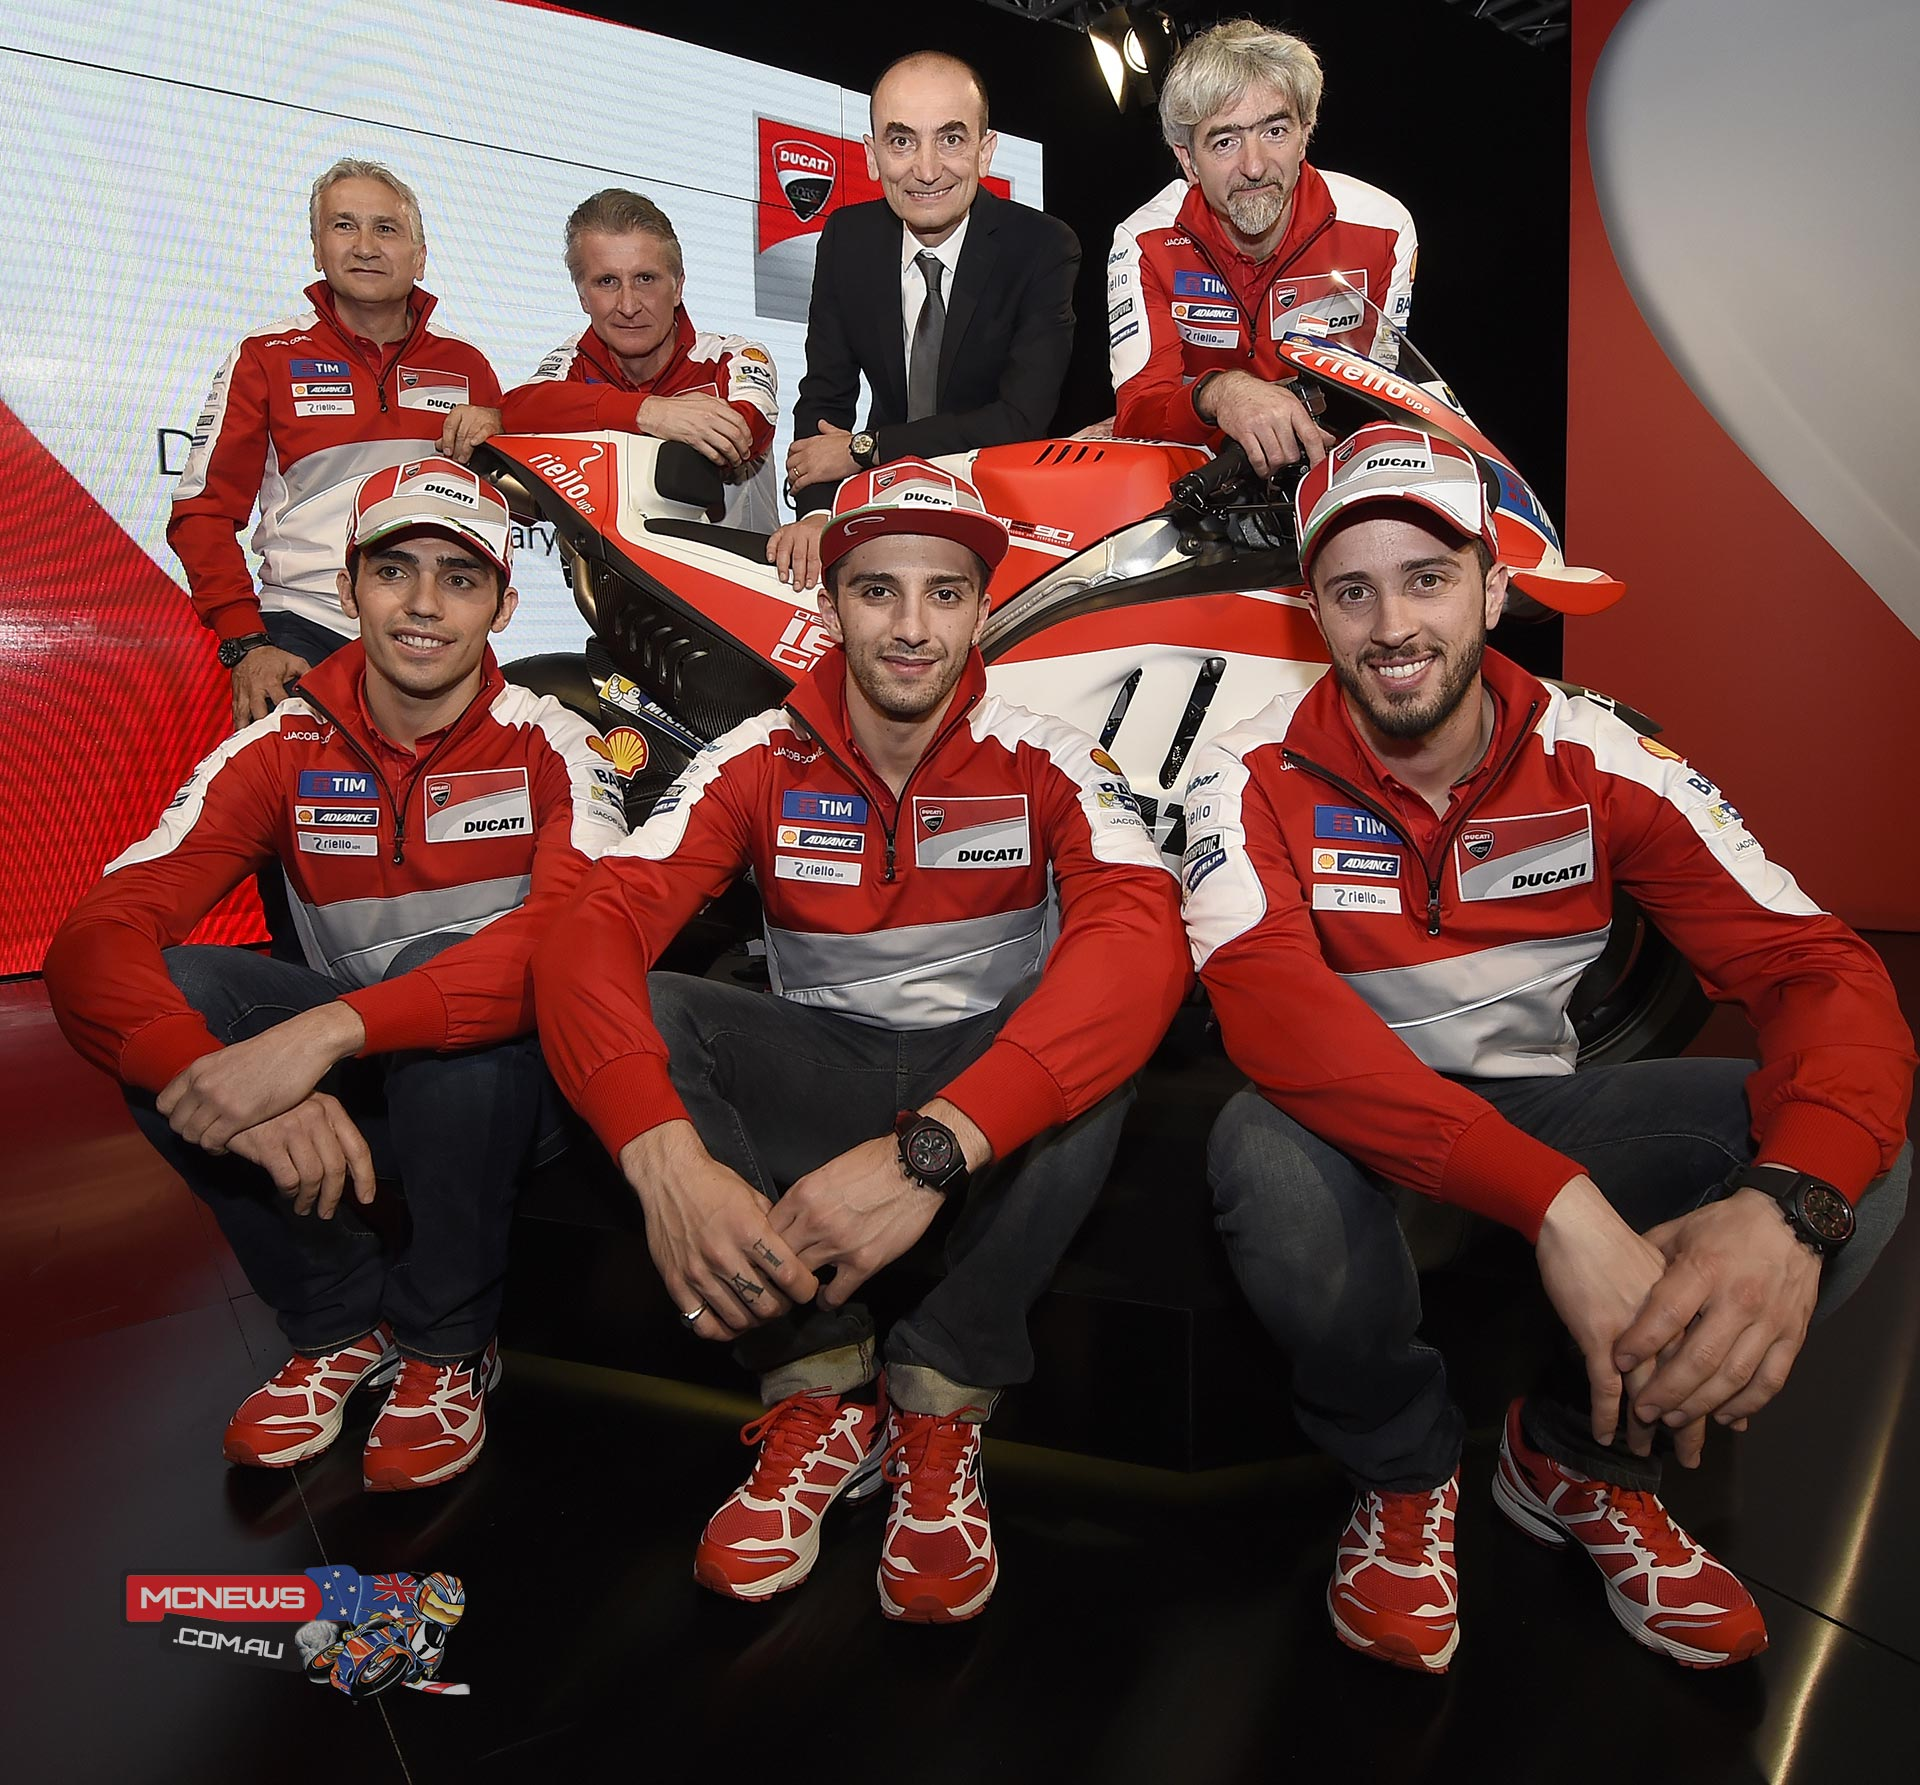 2016 Ducati Motogp Team Launch Mcnewscomau